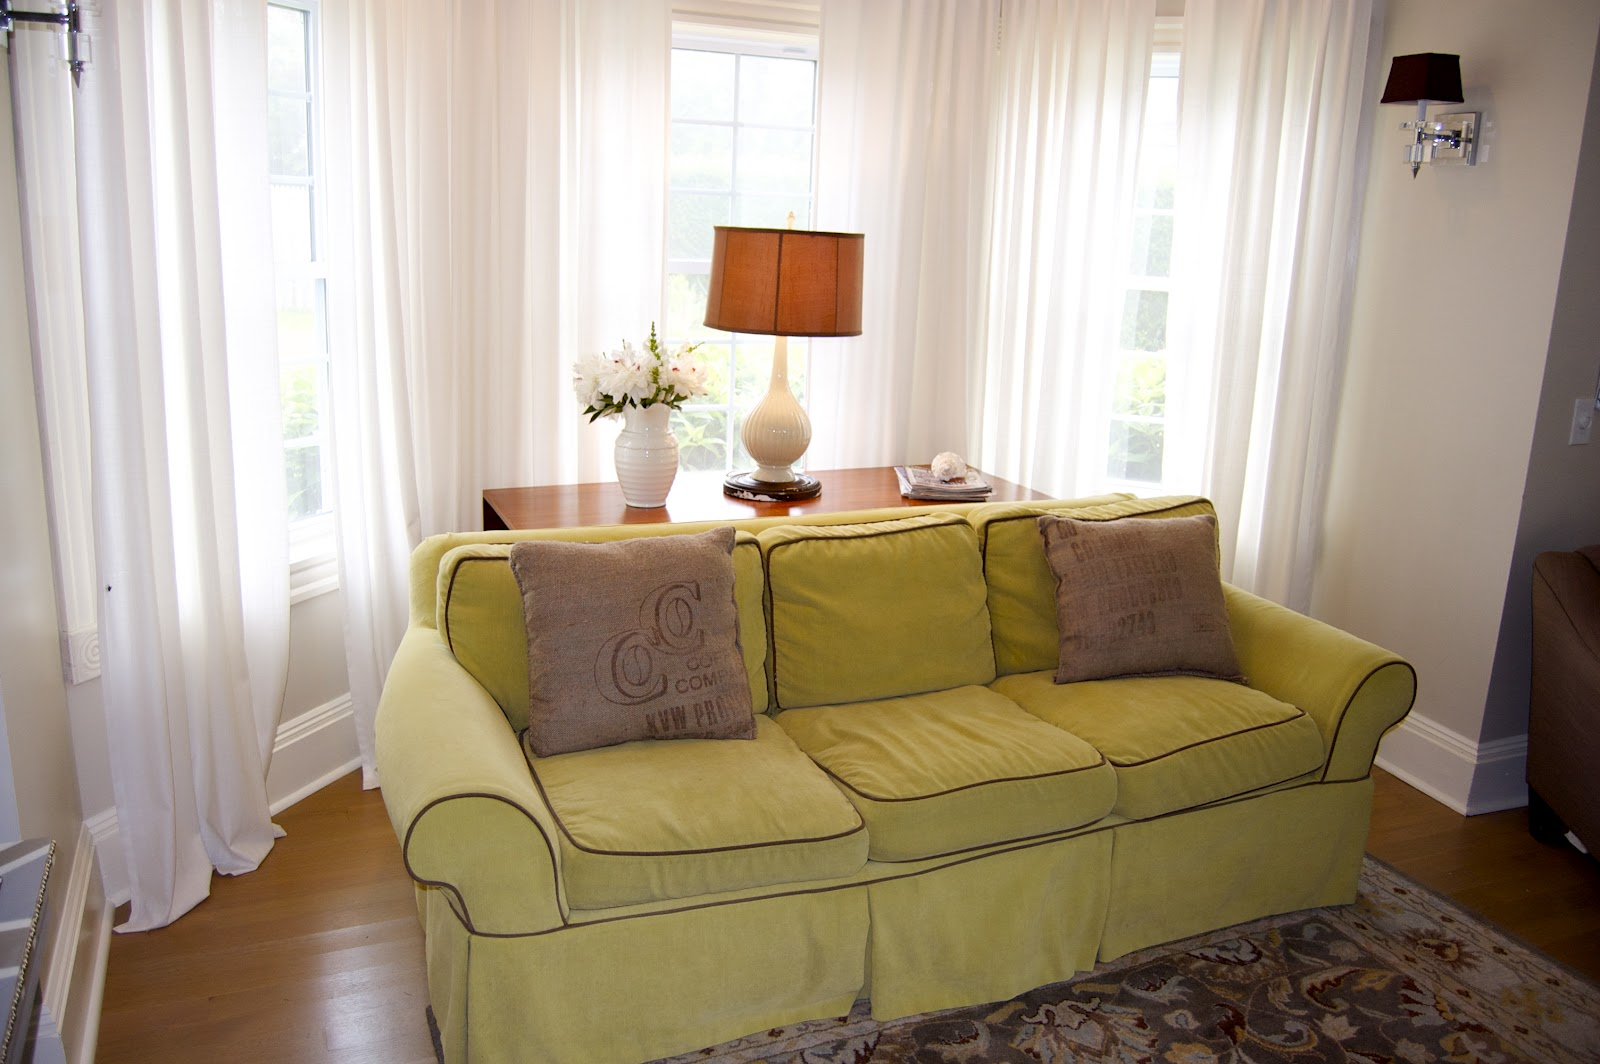 yellow kitchen rug rustic island cart how to choose the right window treatments for wide windows ...